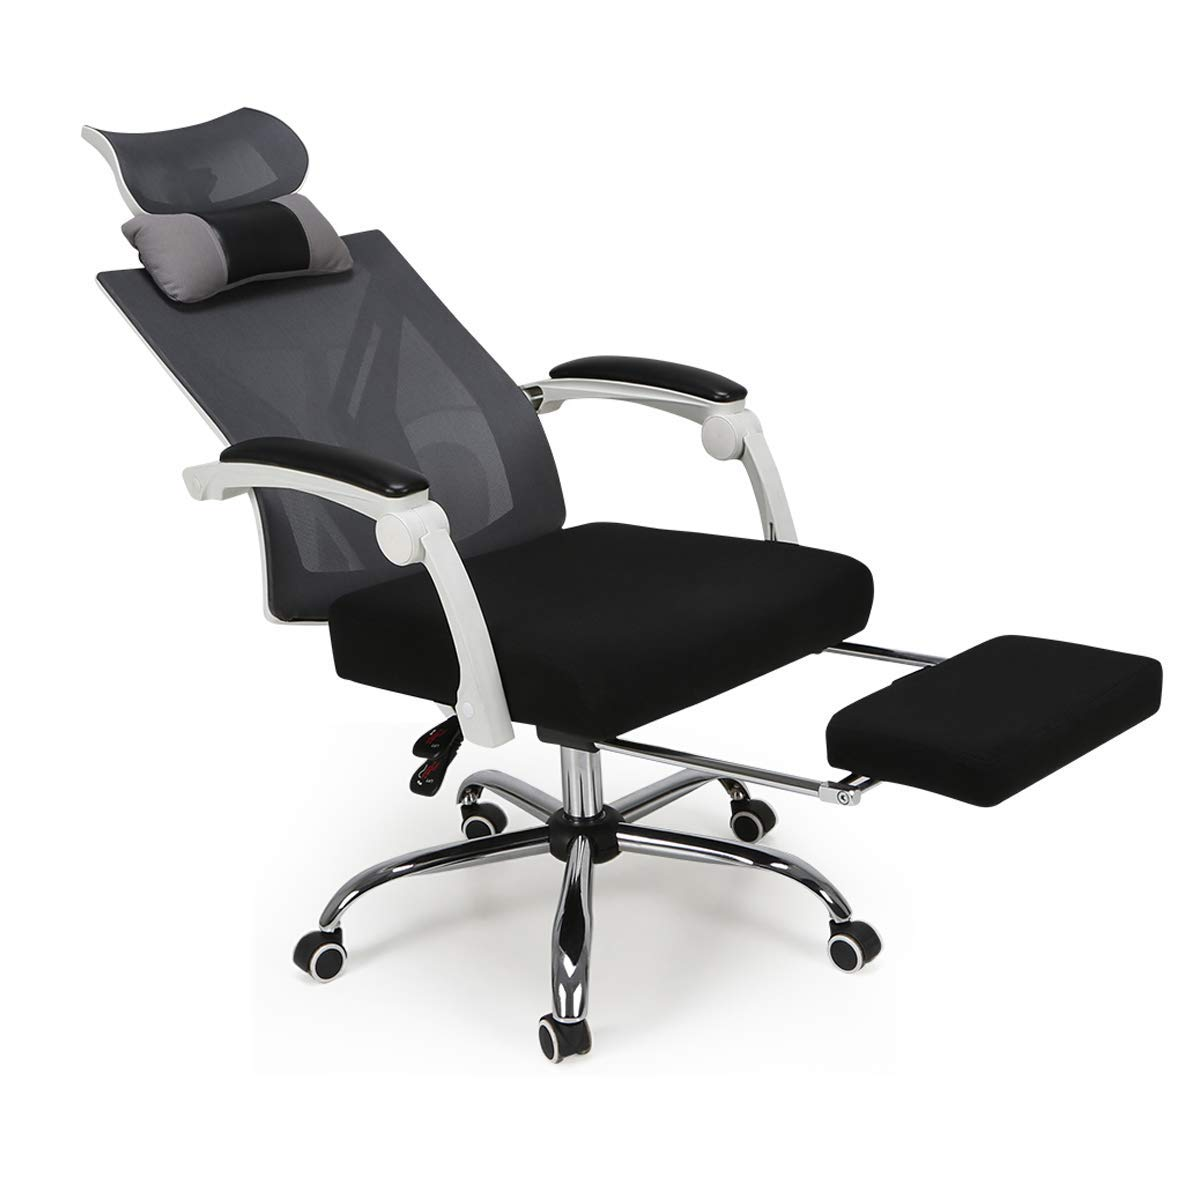 Hbada Ergonomic Office Chair - High-Back Desk Chair Racing Style with Lumbar Support - Height Adjustable Seat,Headrest- Breathable Mesh Back - Soft Foam Seat Cushion with Footrest, White by Hbada (Image #2)